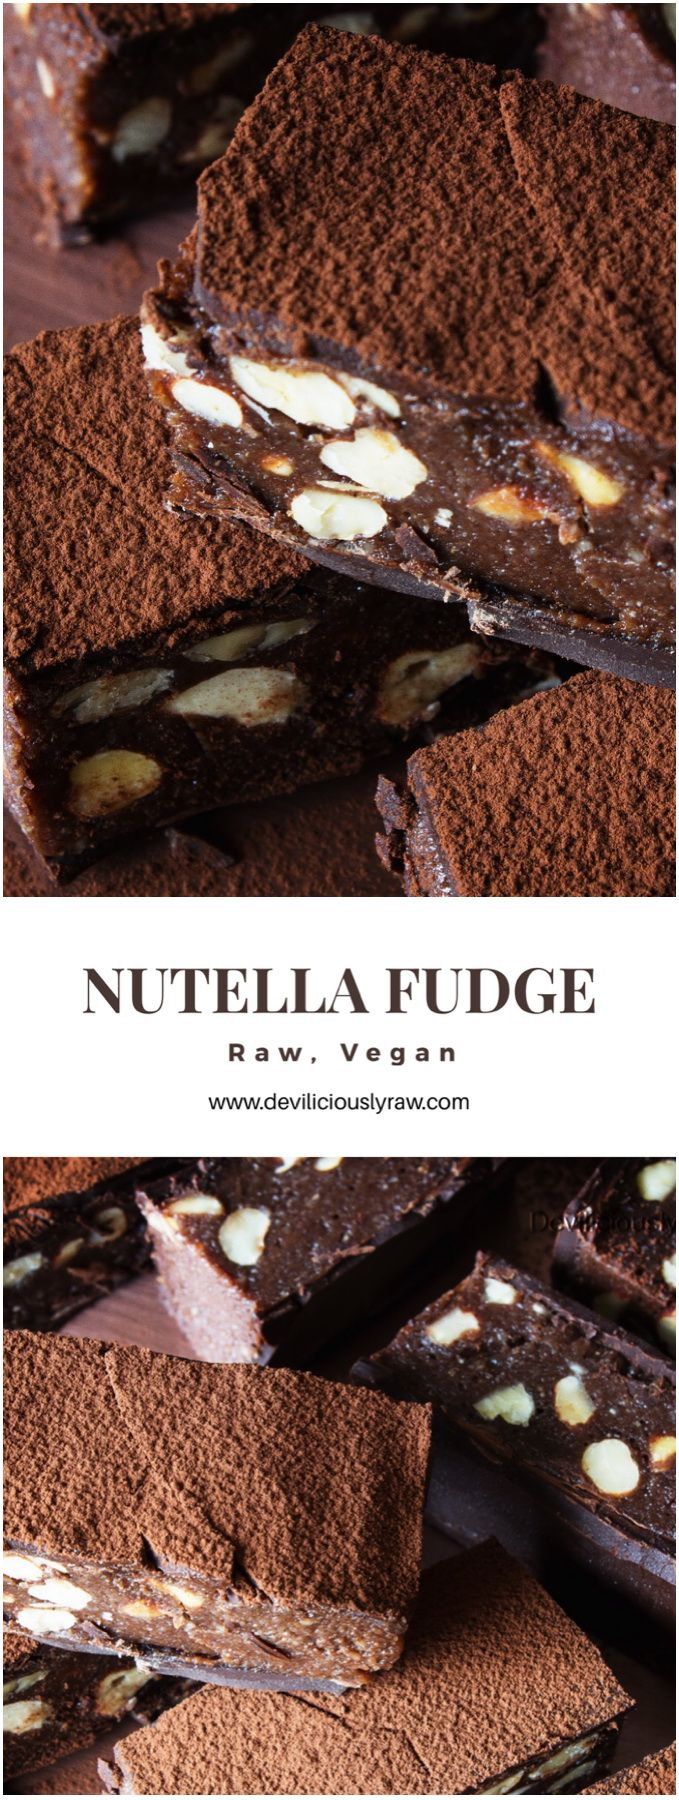 #raw #vegan Nutella Fudge from Deviliciously Raw